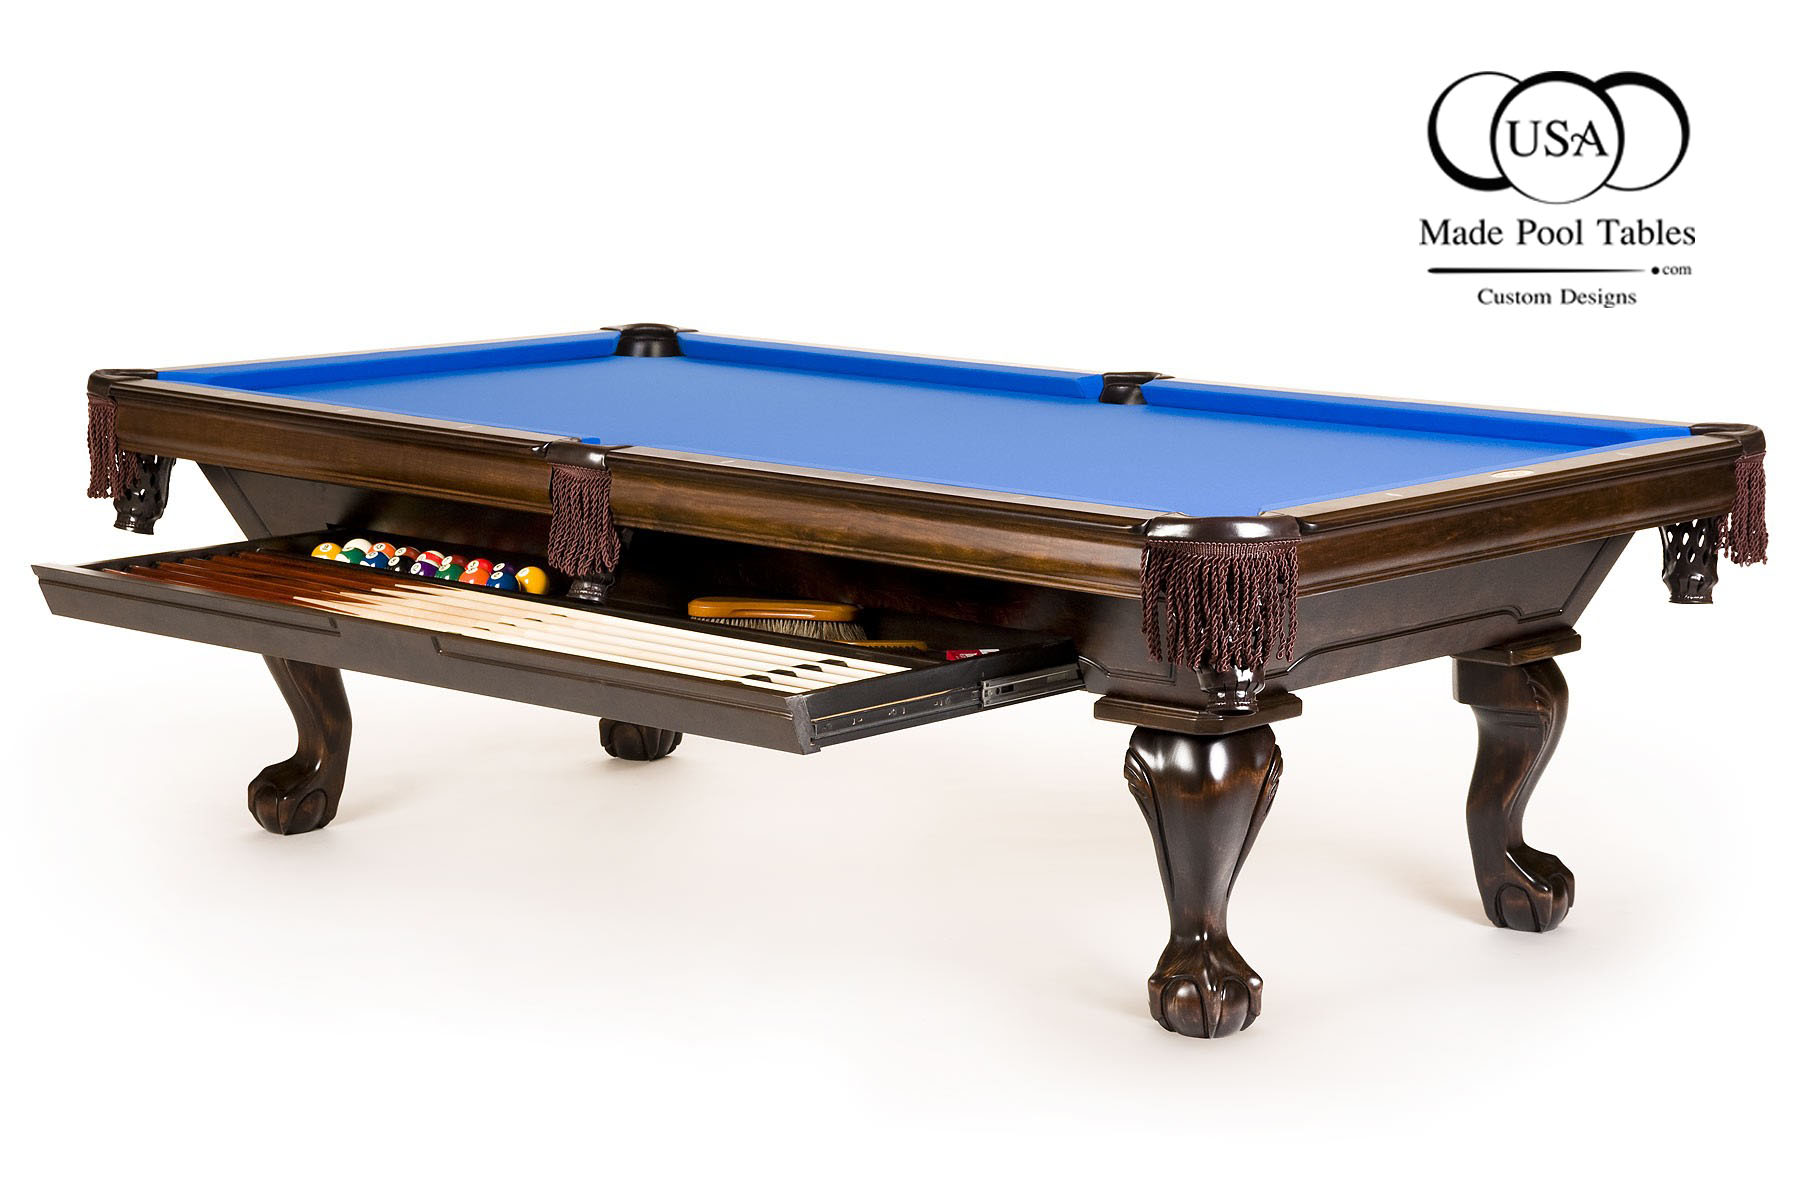 Pool Tables Pool Table Contemporary Pool Tables Modern Pool - Pool table movers phoenix